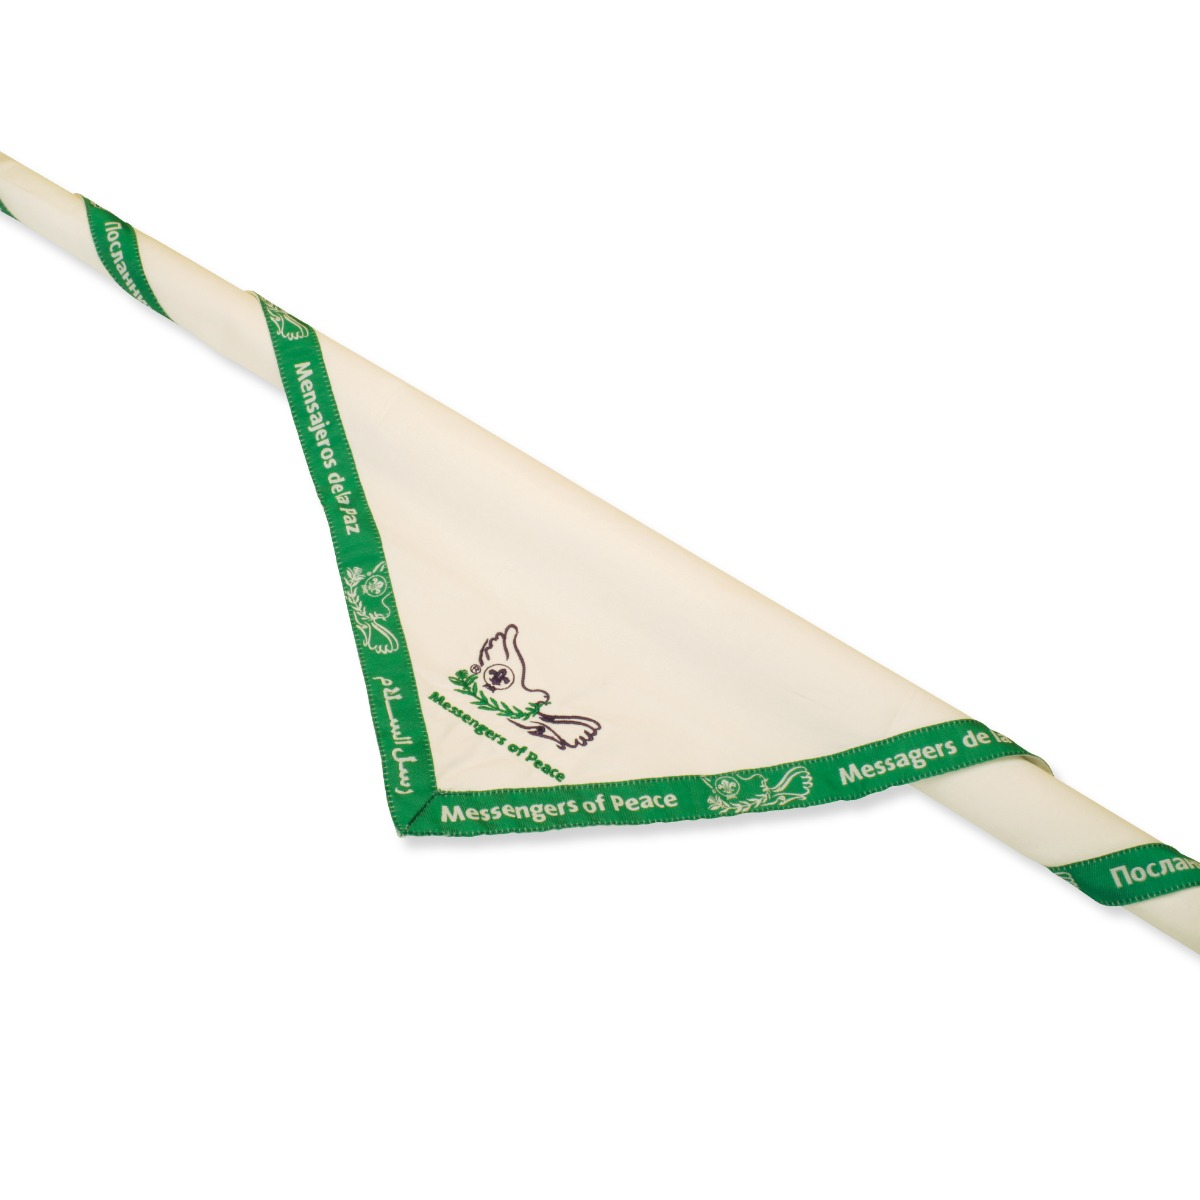 MESSENGERS OF PEACE SCOUT NECKERCHIEF WORLD ORGANIZATION OF SCOUTS MOVEMENT